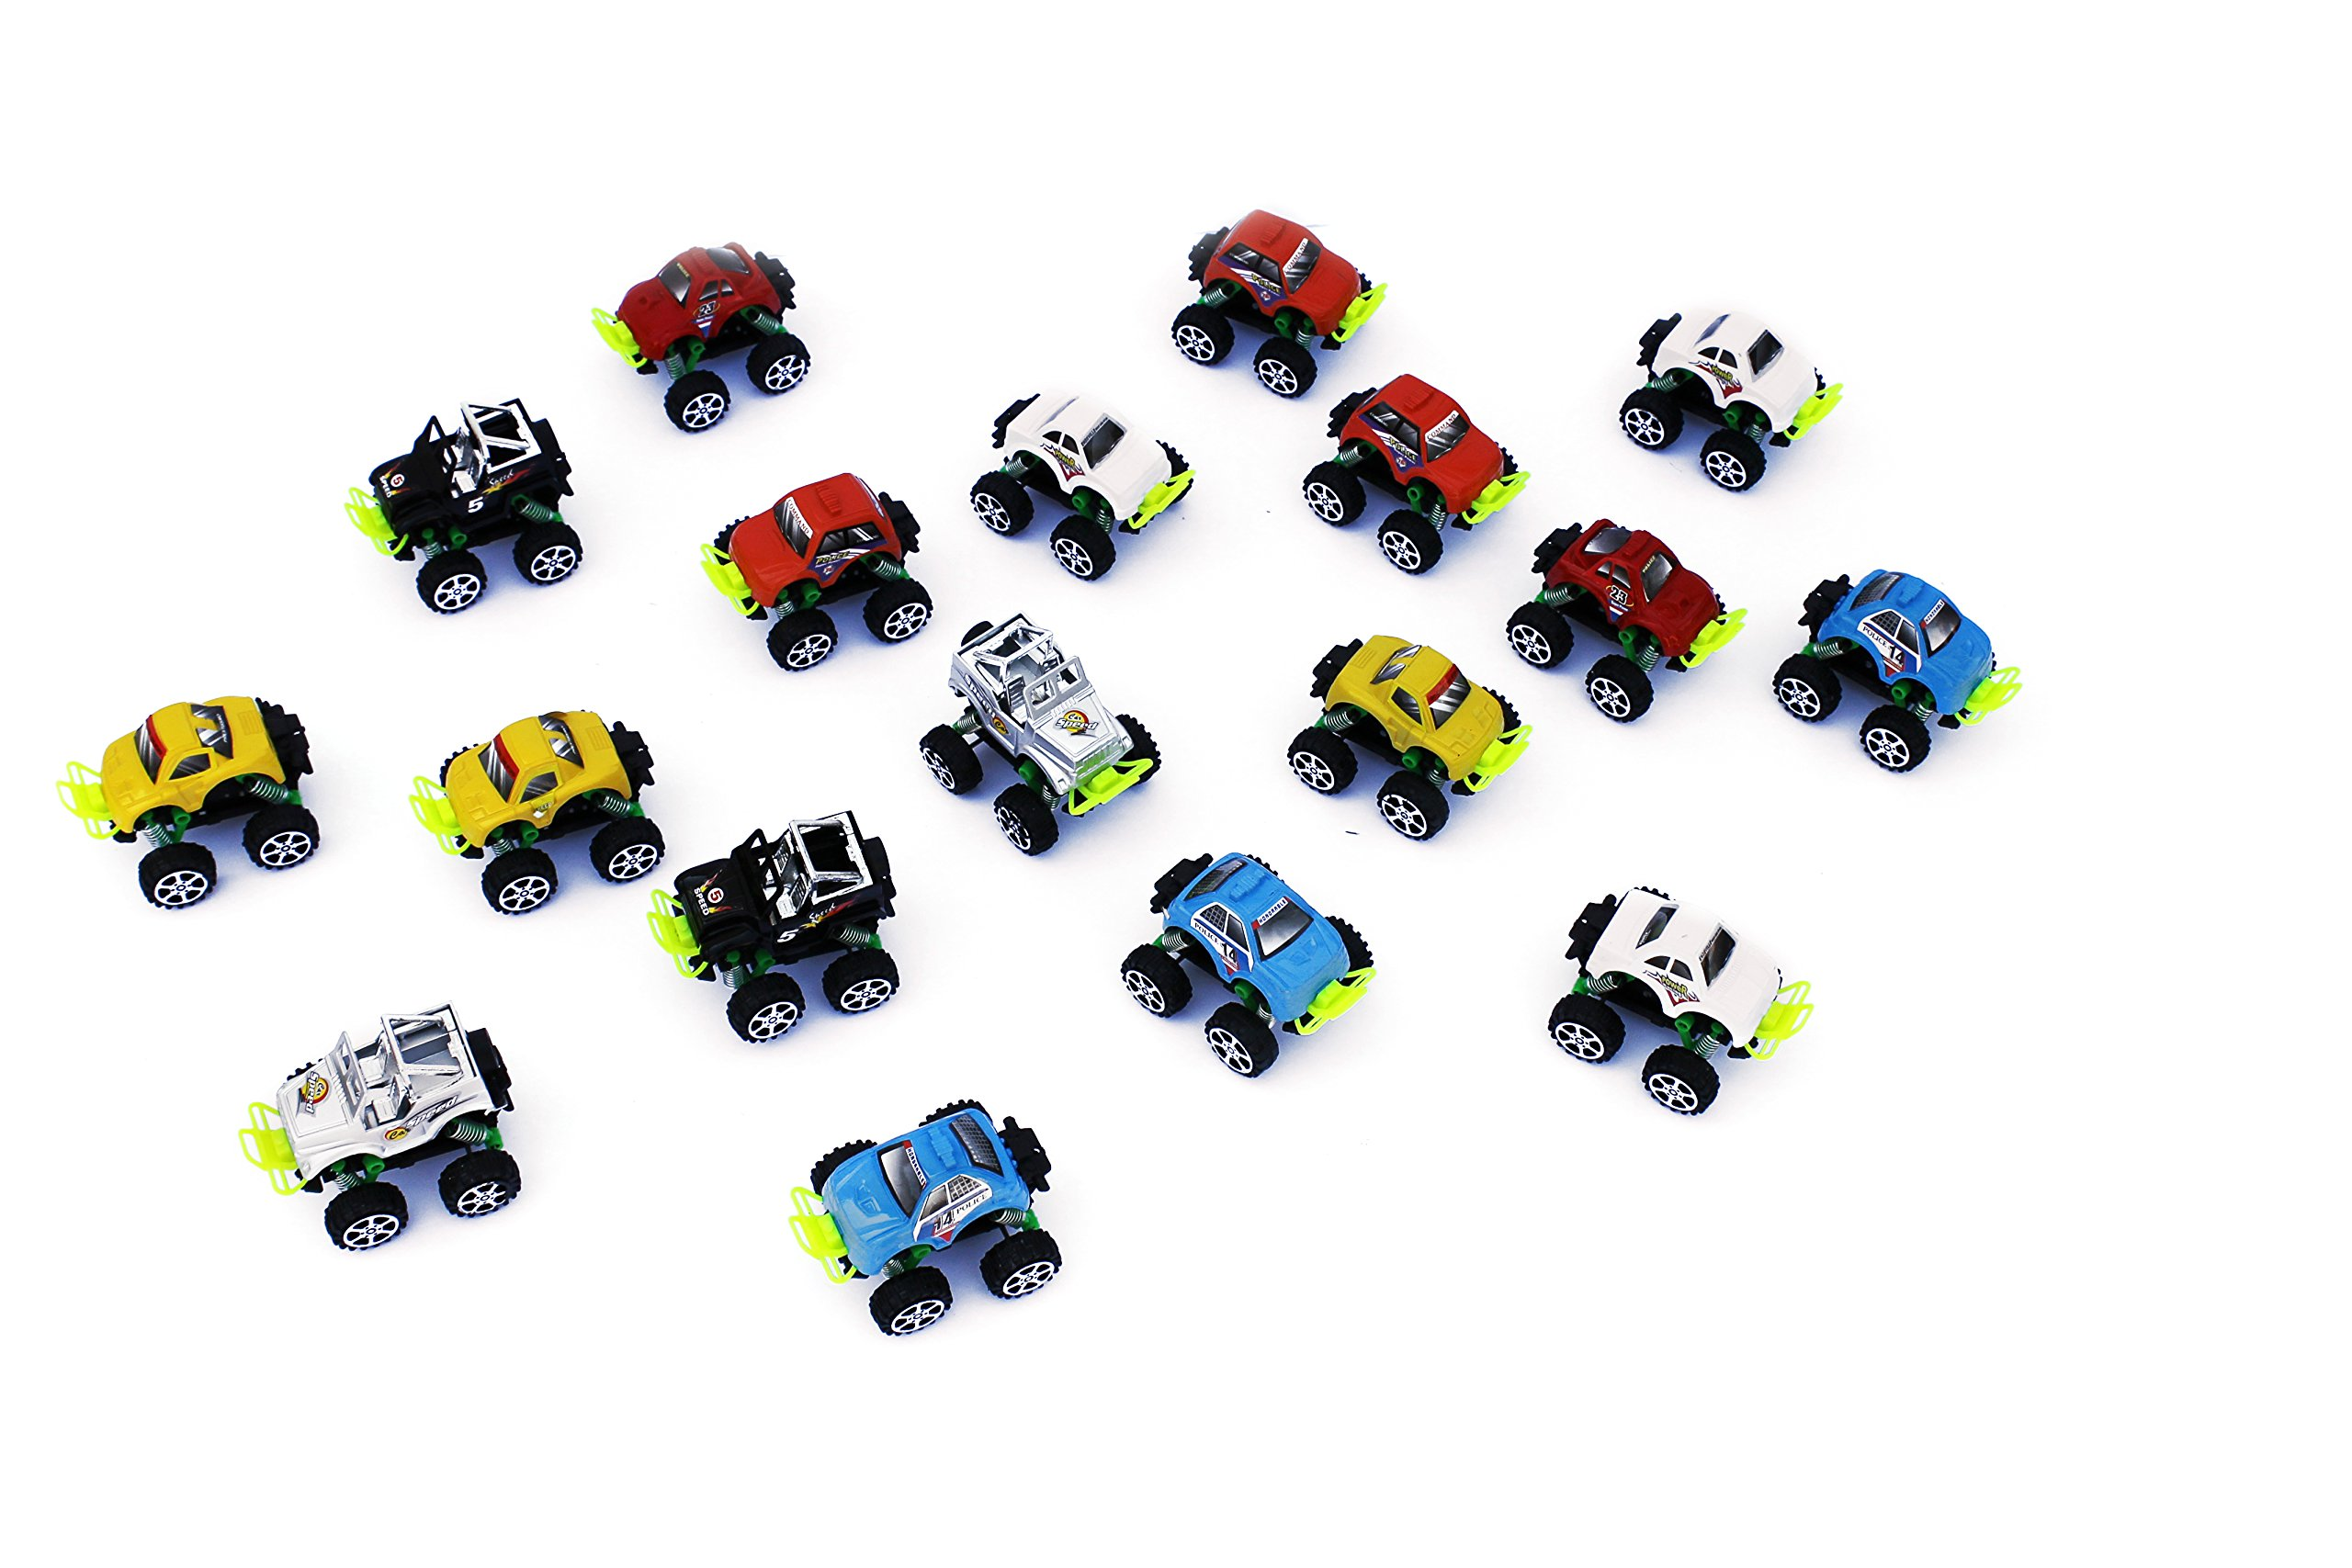 36 Pieces Trucks Assortment toys-For kids Party Favor-Birthday Party-School Classroom Rewards,Carnival Prizes,Pinata by realtoys